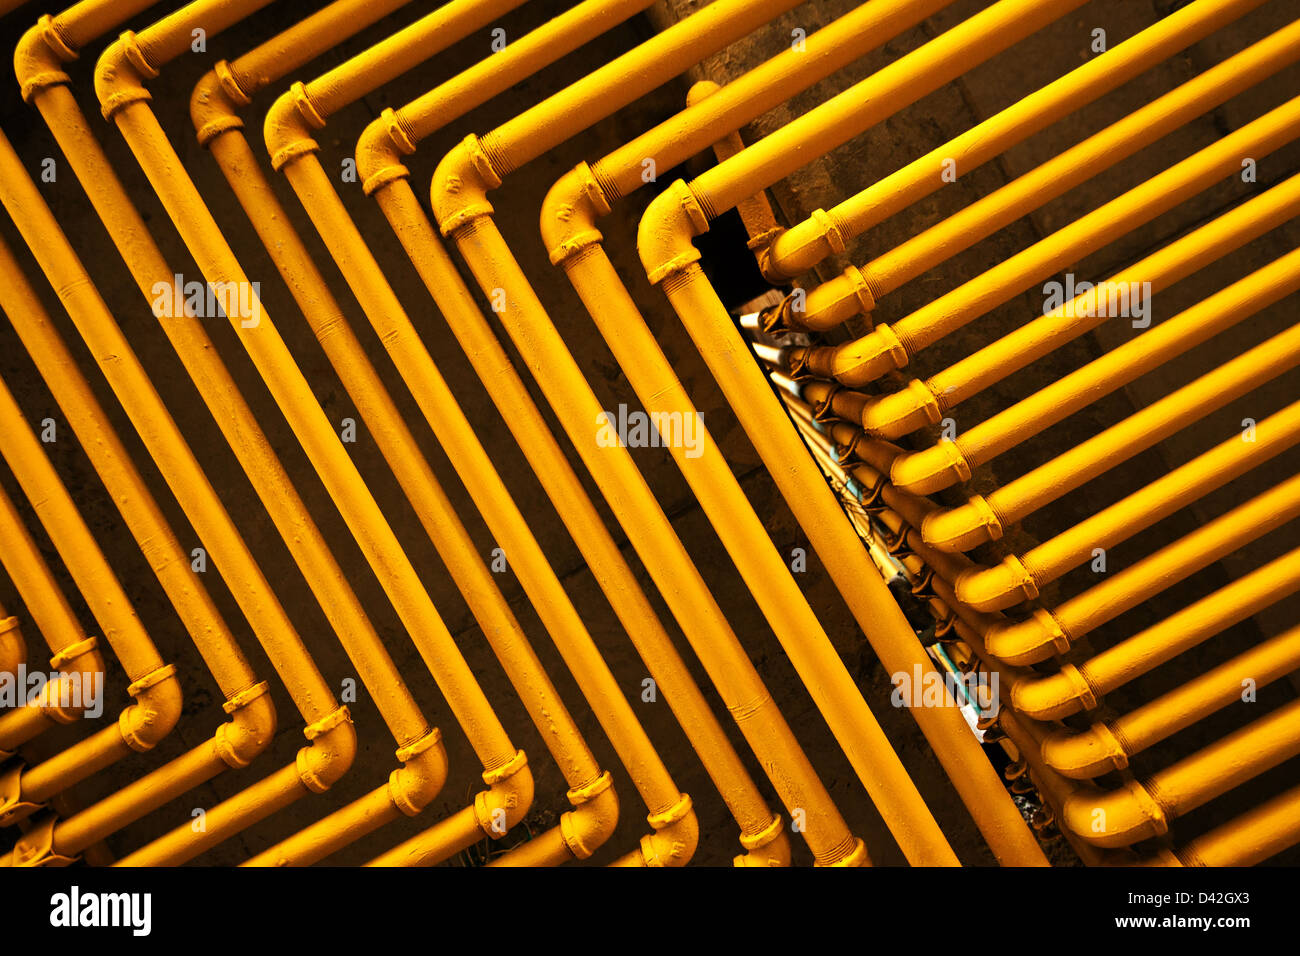 An image of yellow pipes forming an interesting pattern. - Stock Image